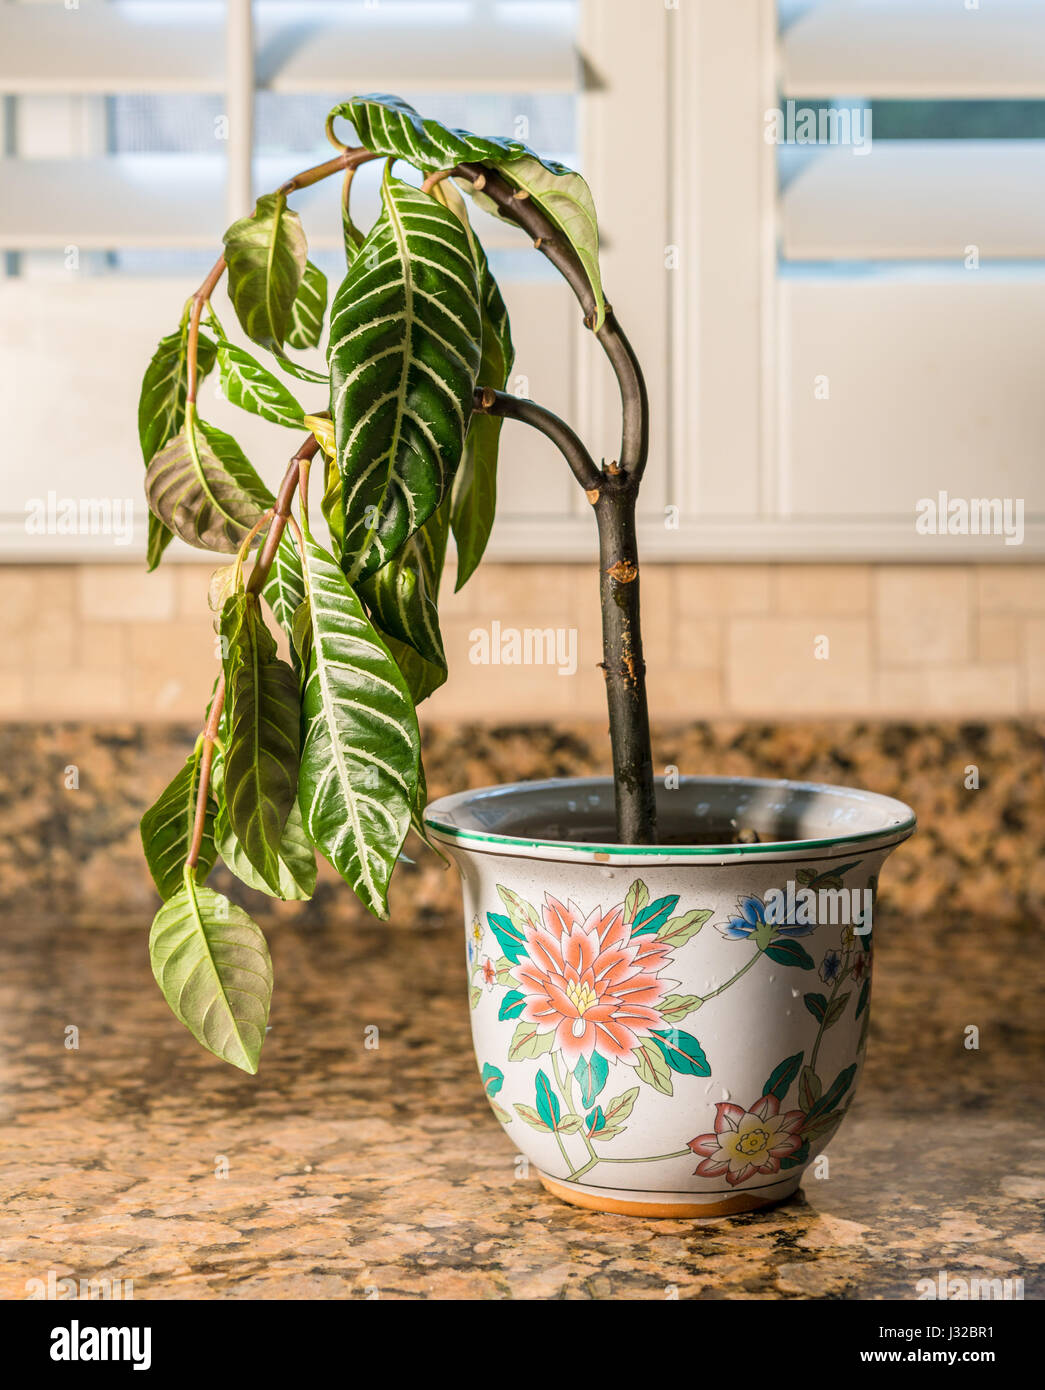 Drooping house plant in kitchen - shame, melancholy or depression concept - Stock Image